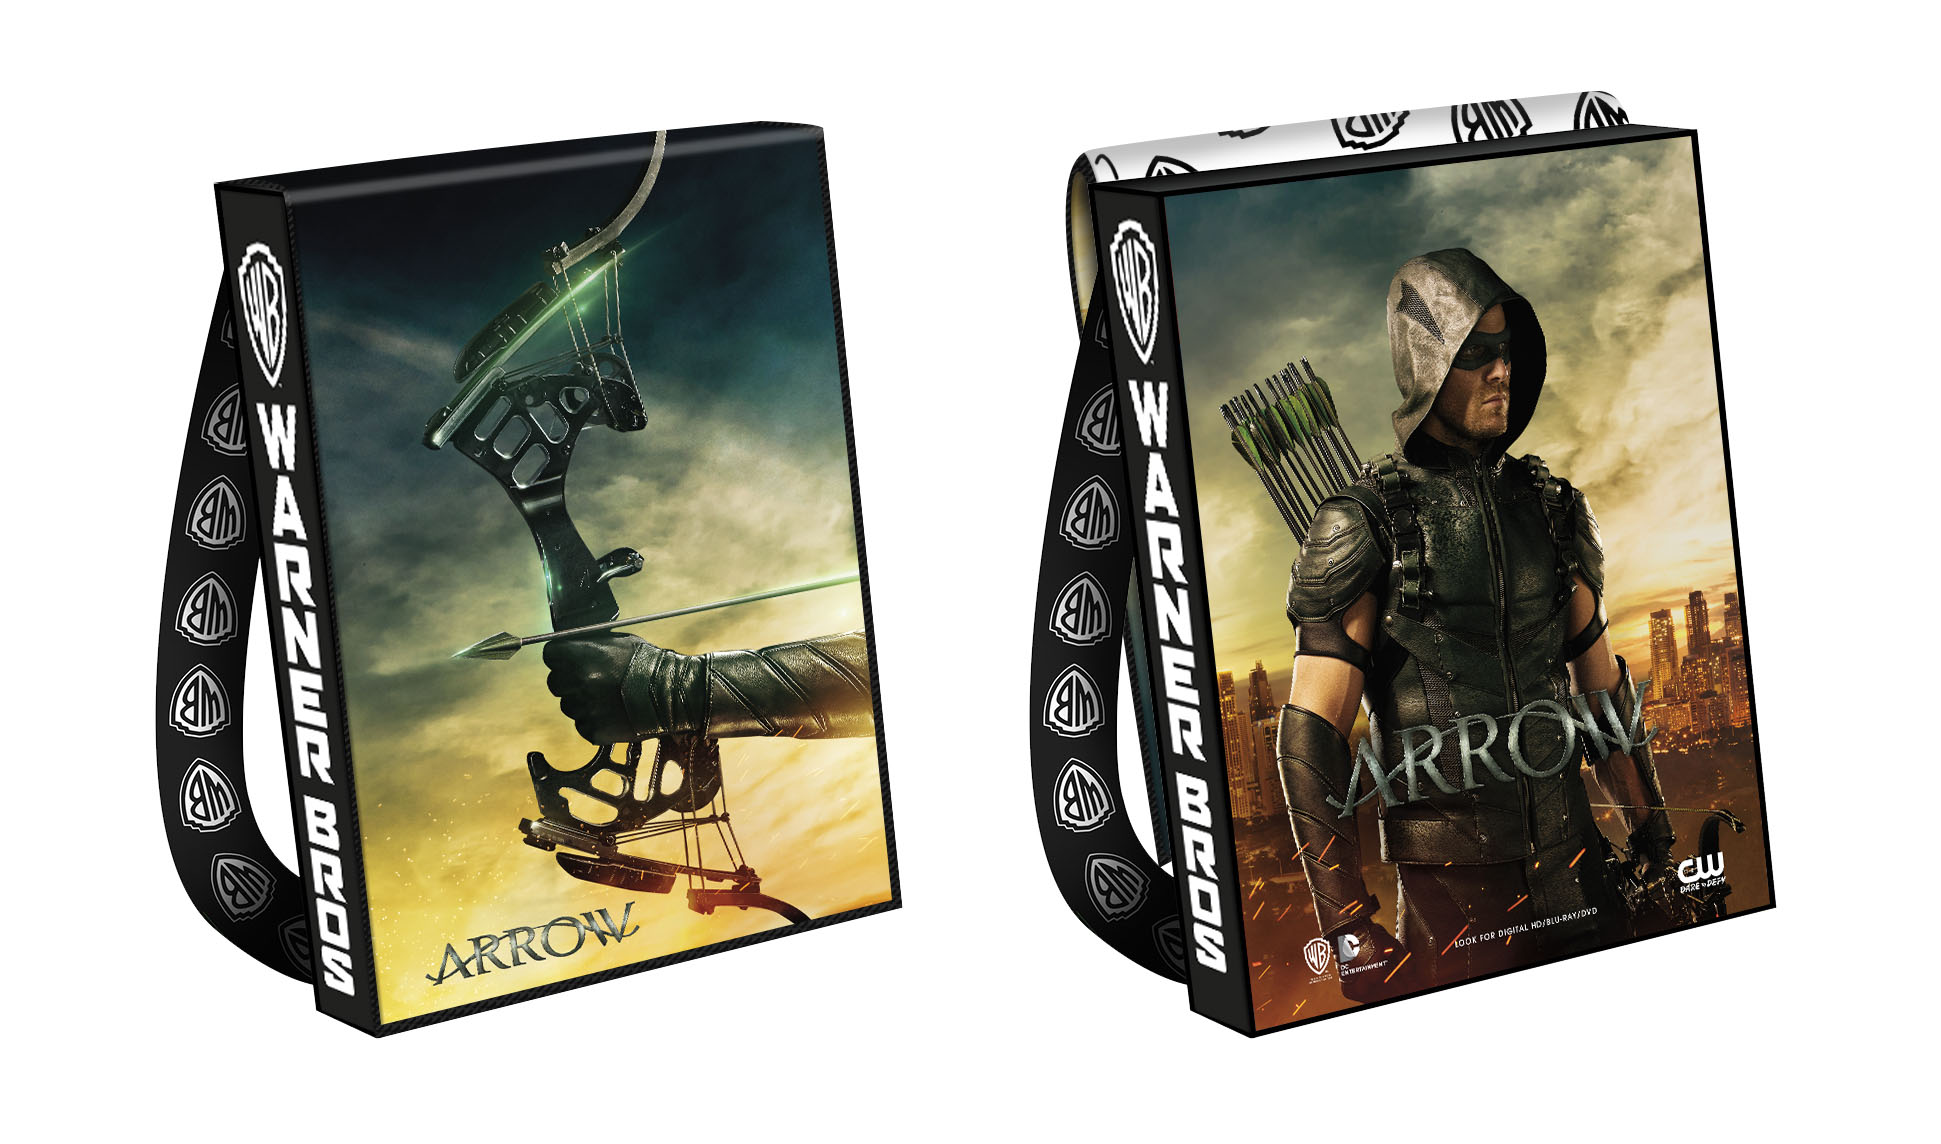 ARROW 2016 Comic-Con Bag